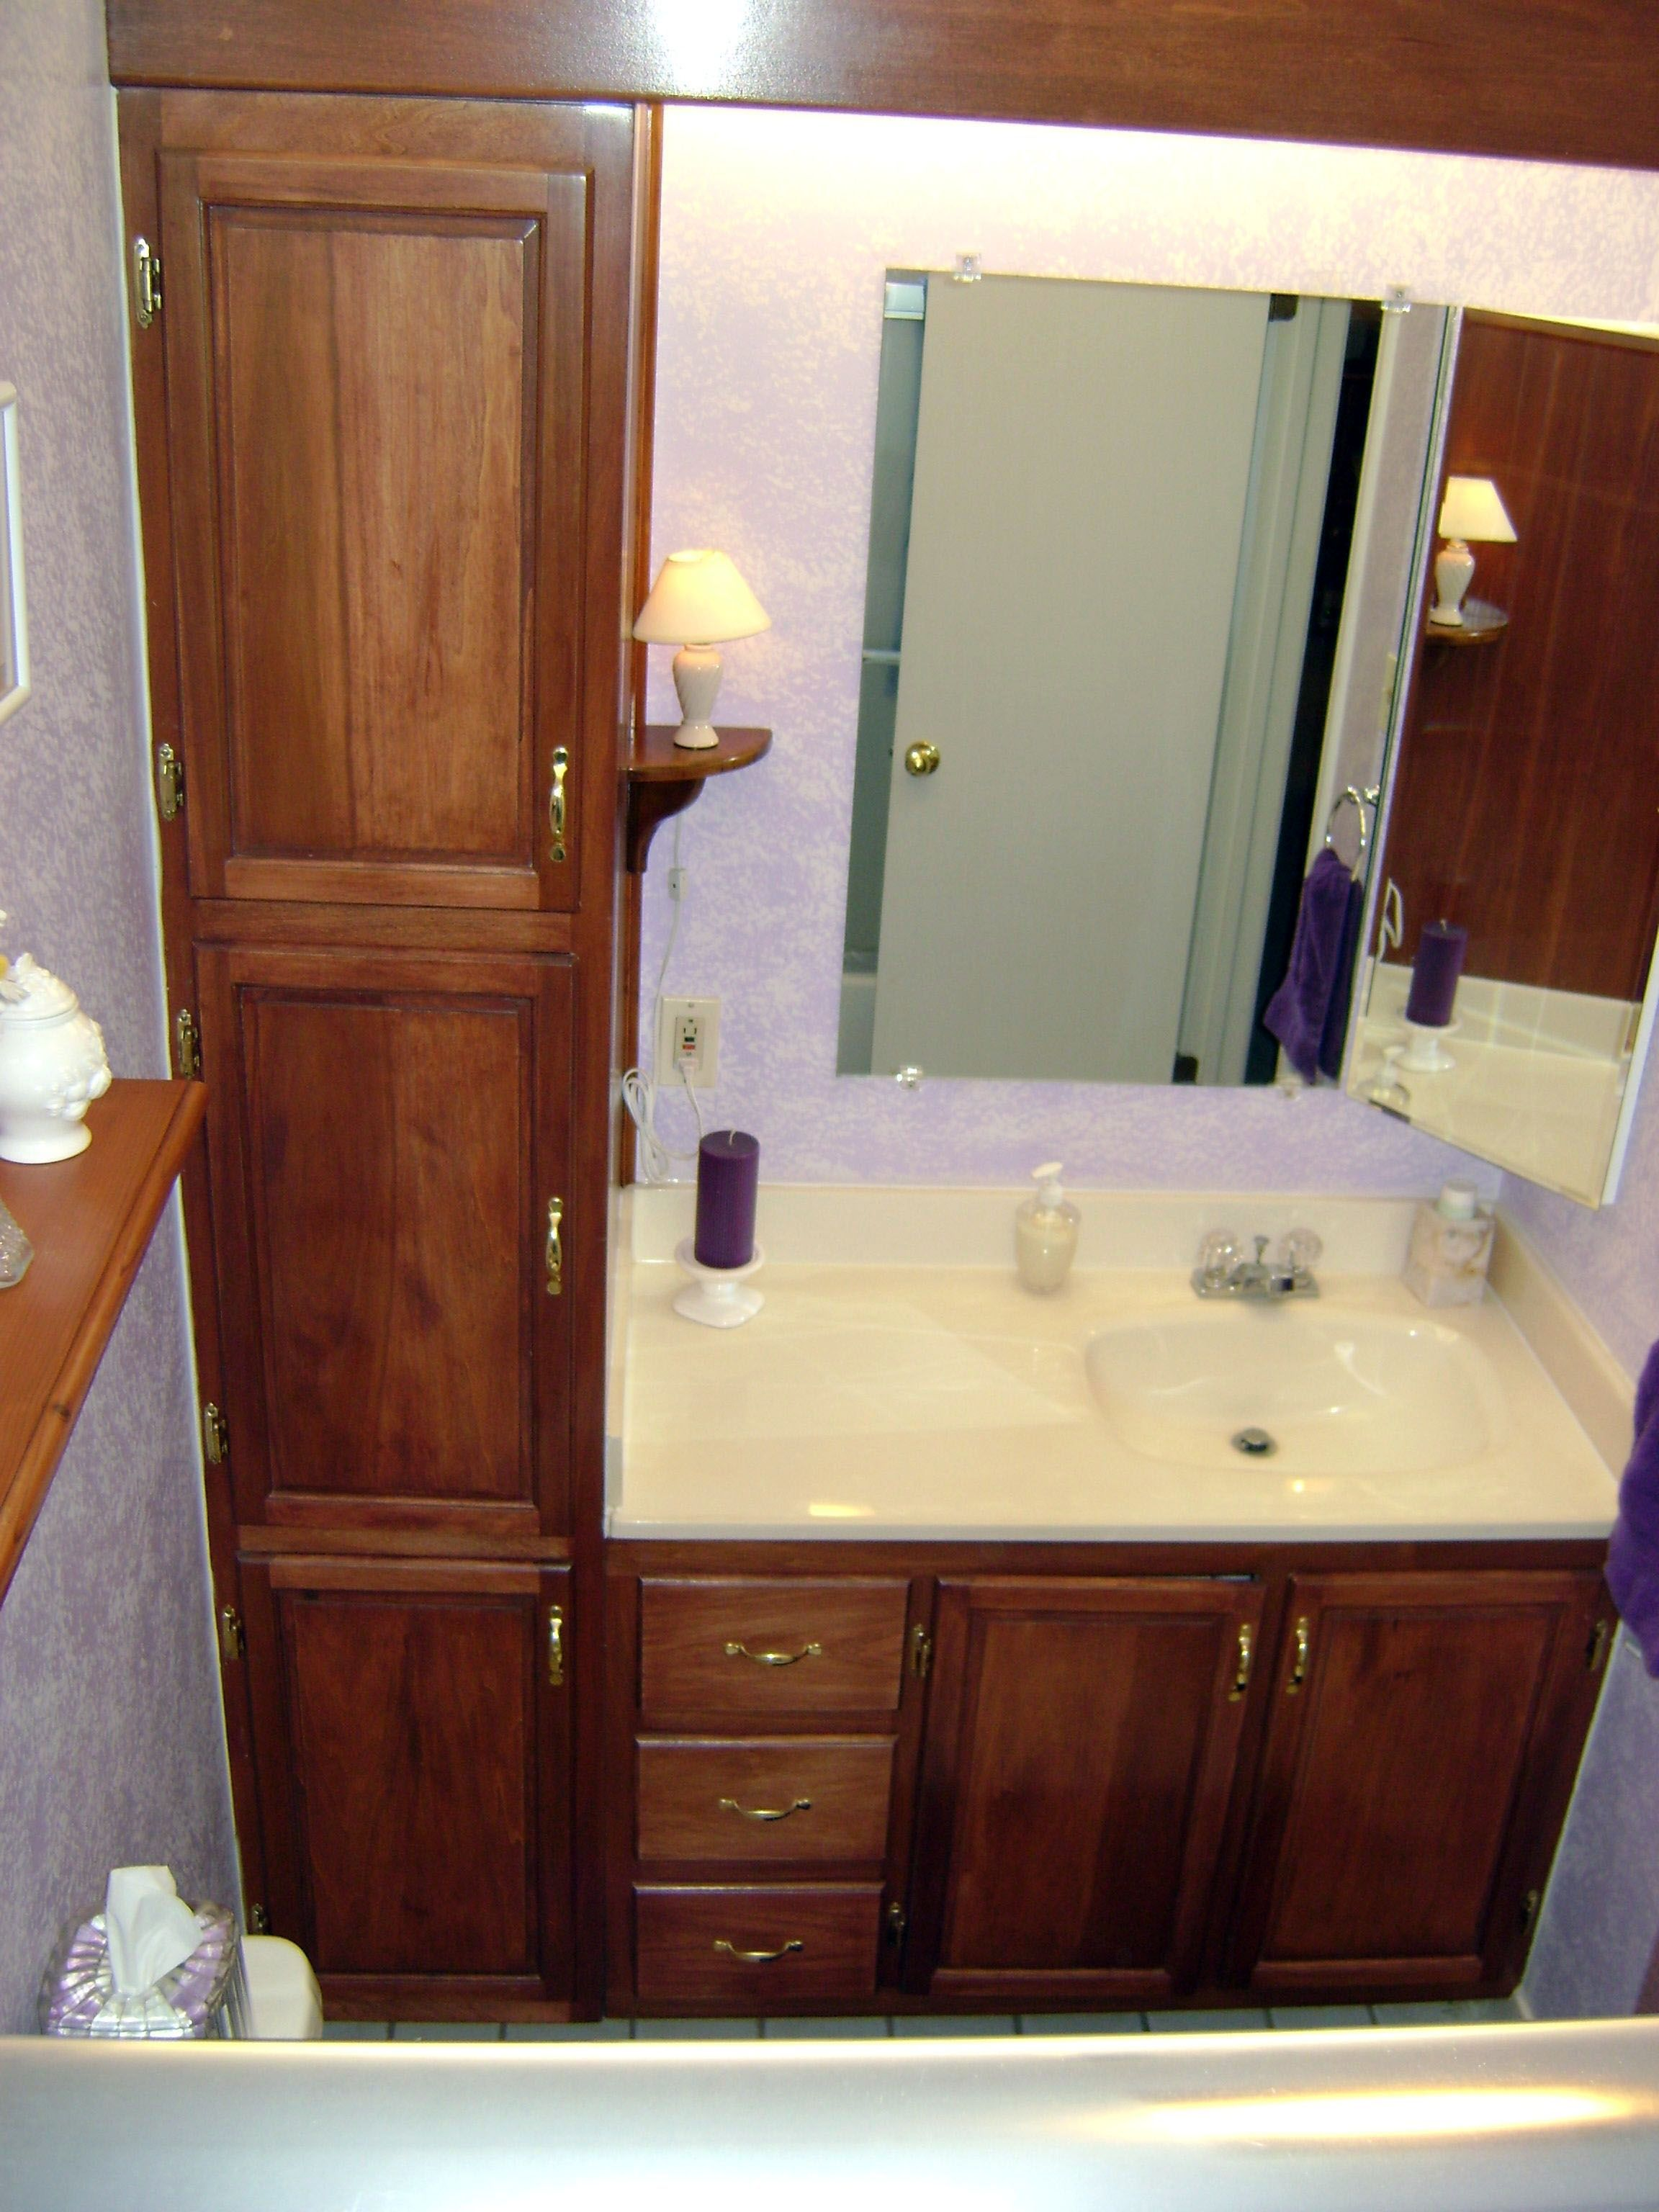 Design Tips To Create A Small Restroom Much Better ...